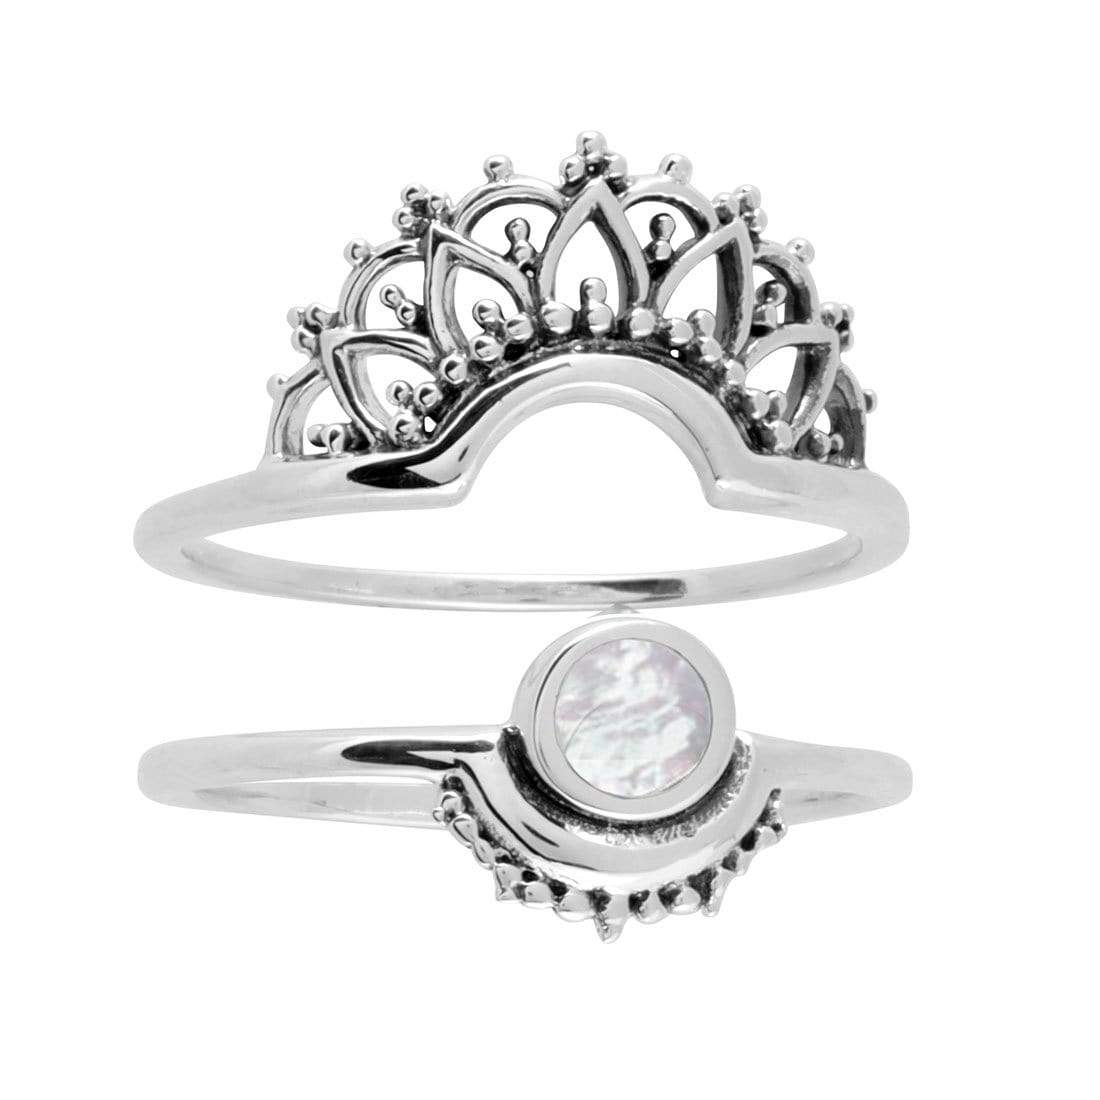 Midsummer Star Ring Emanate Pearl Ring Set